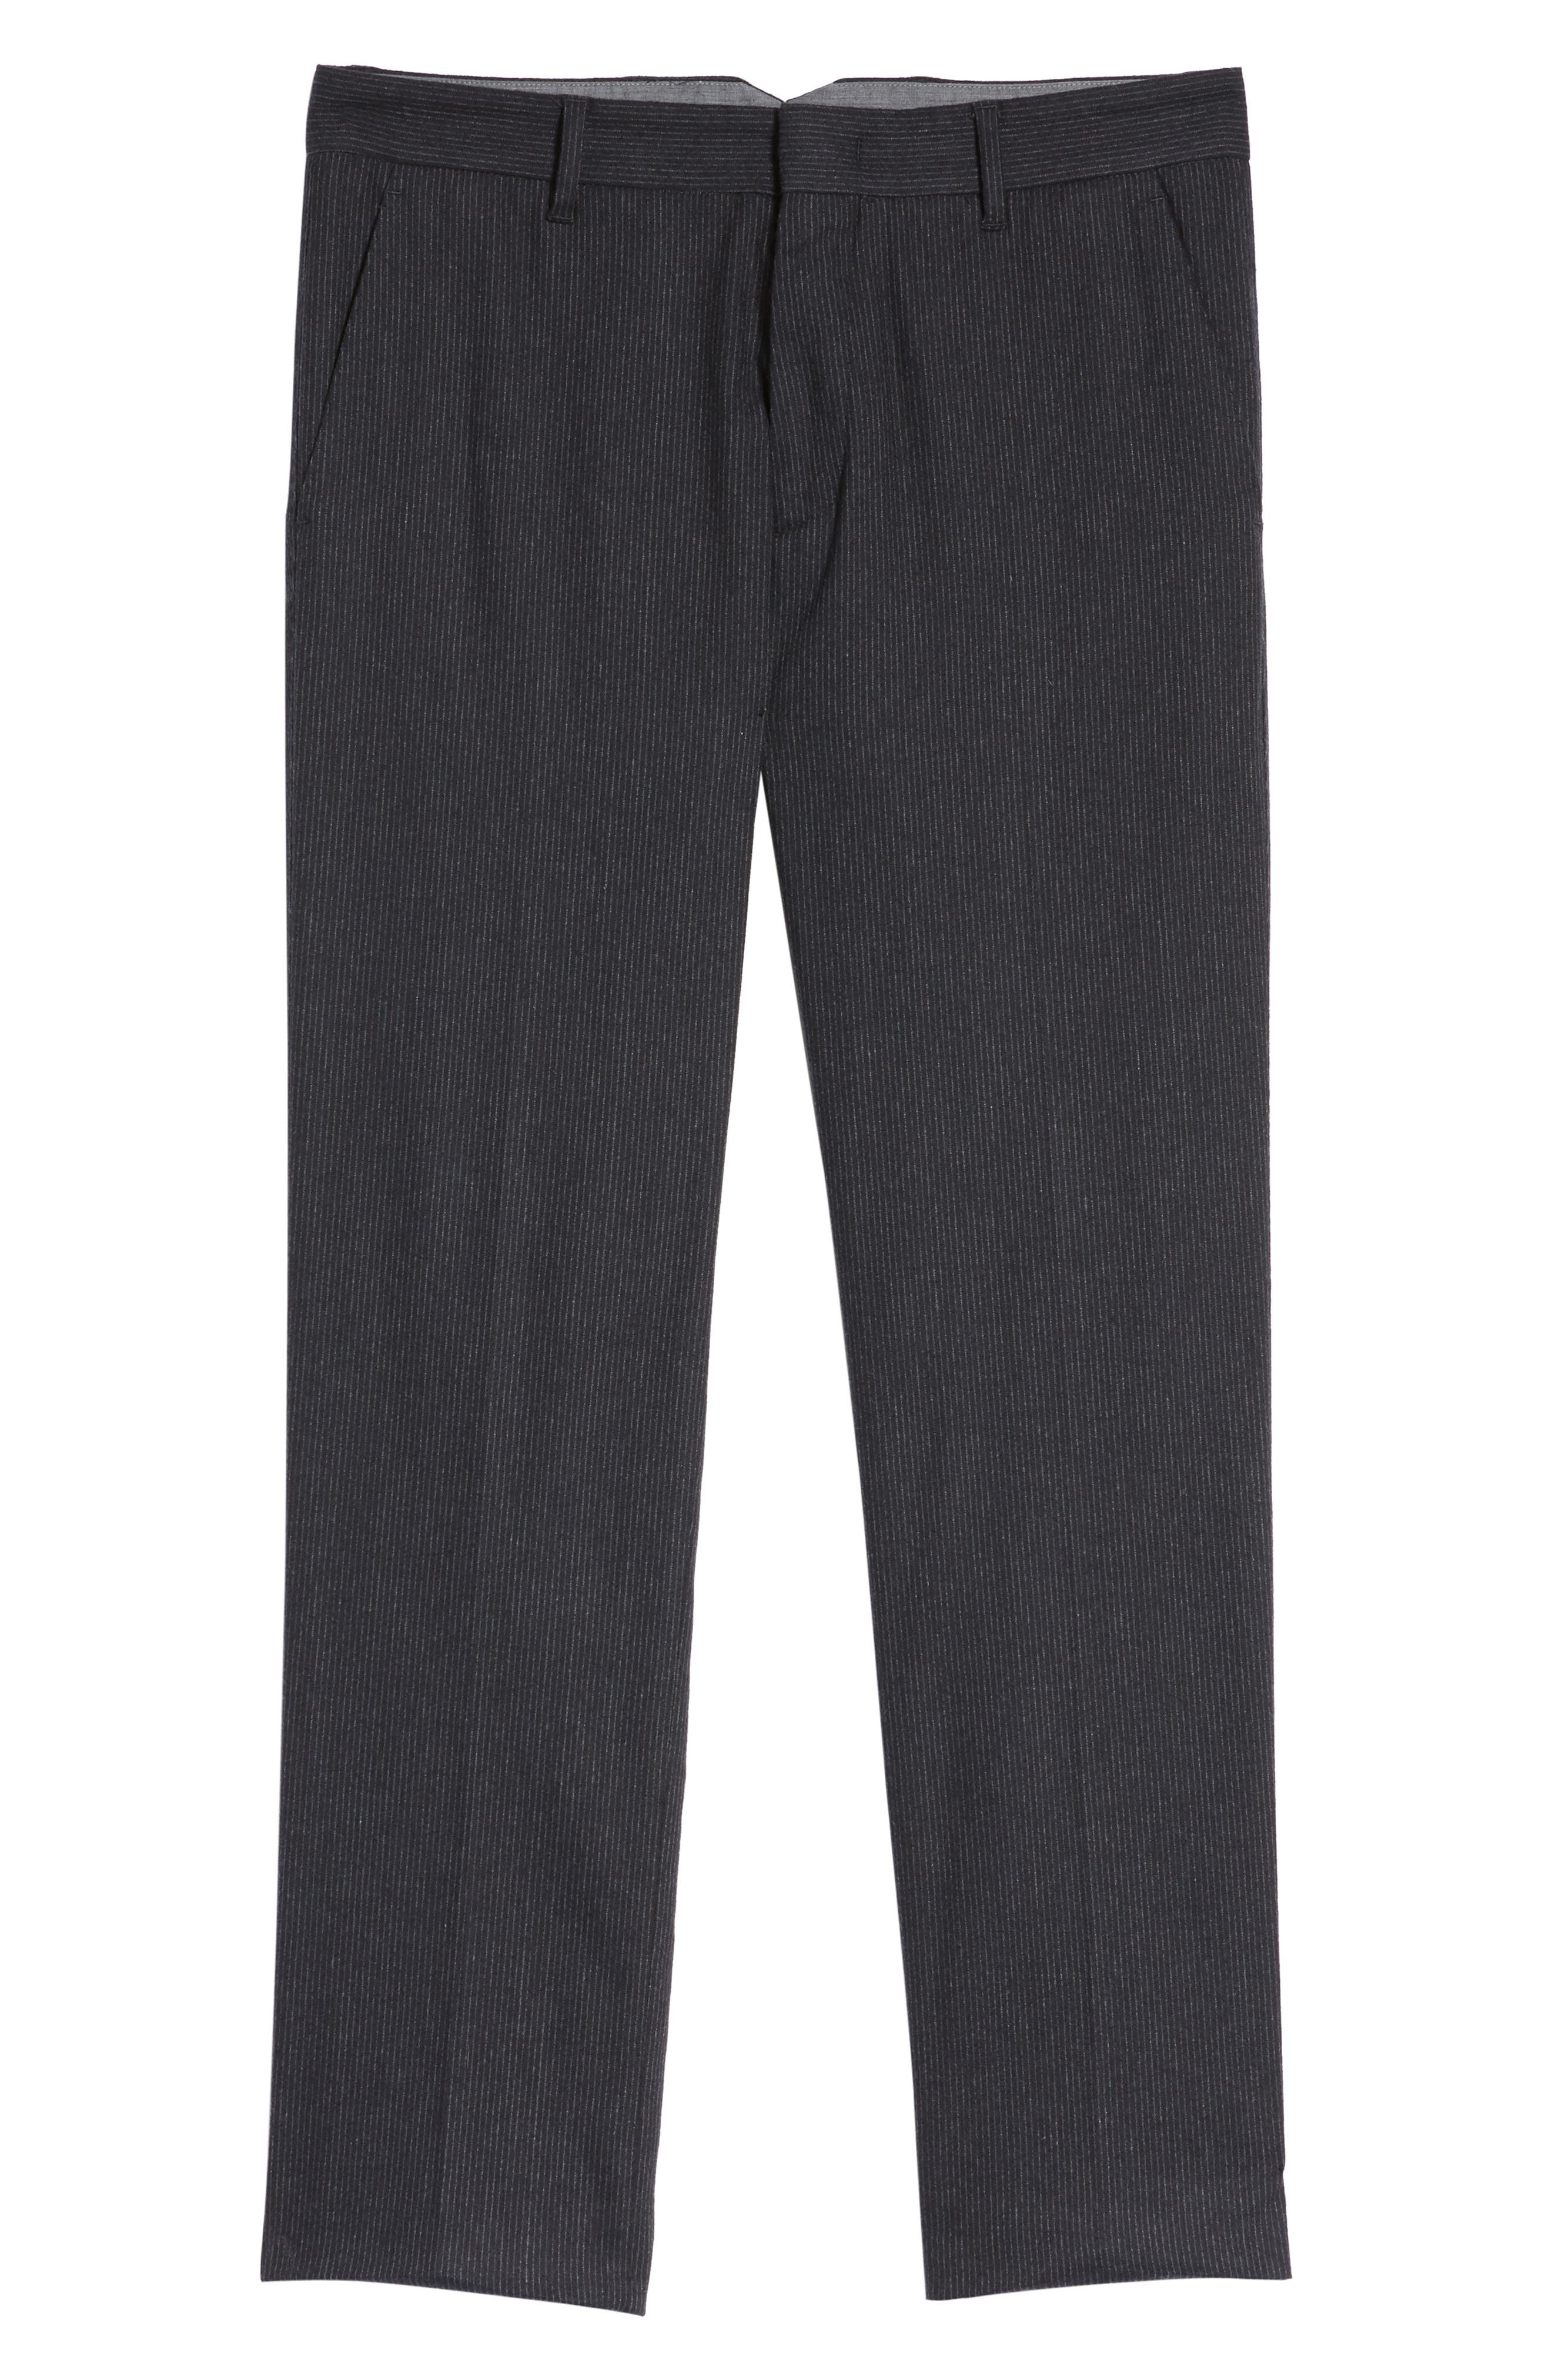 Rushmore Pinstripe Stretch Wool Blend Trousers,                             Alternate thumbnail 6, color,                             Navy